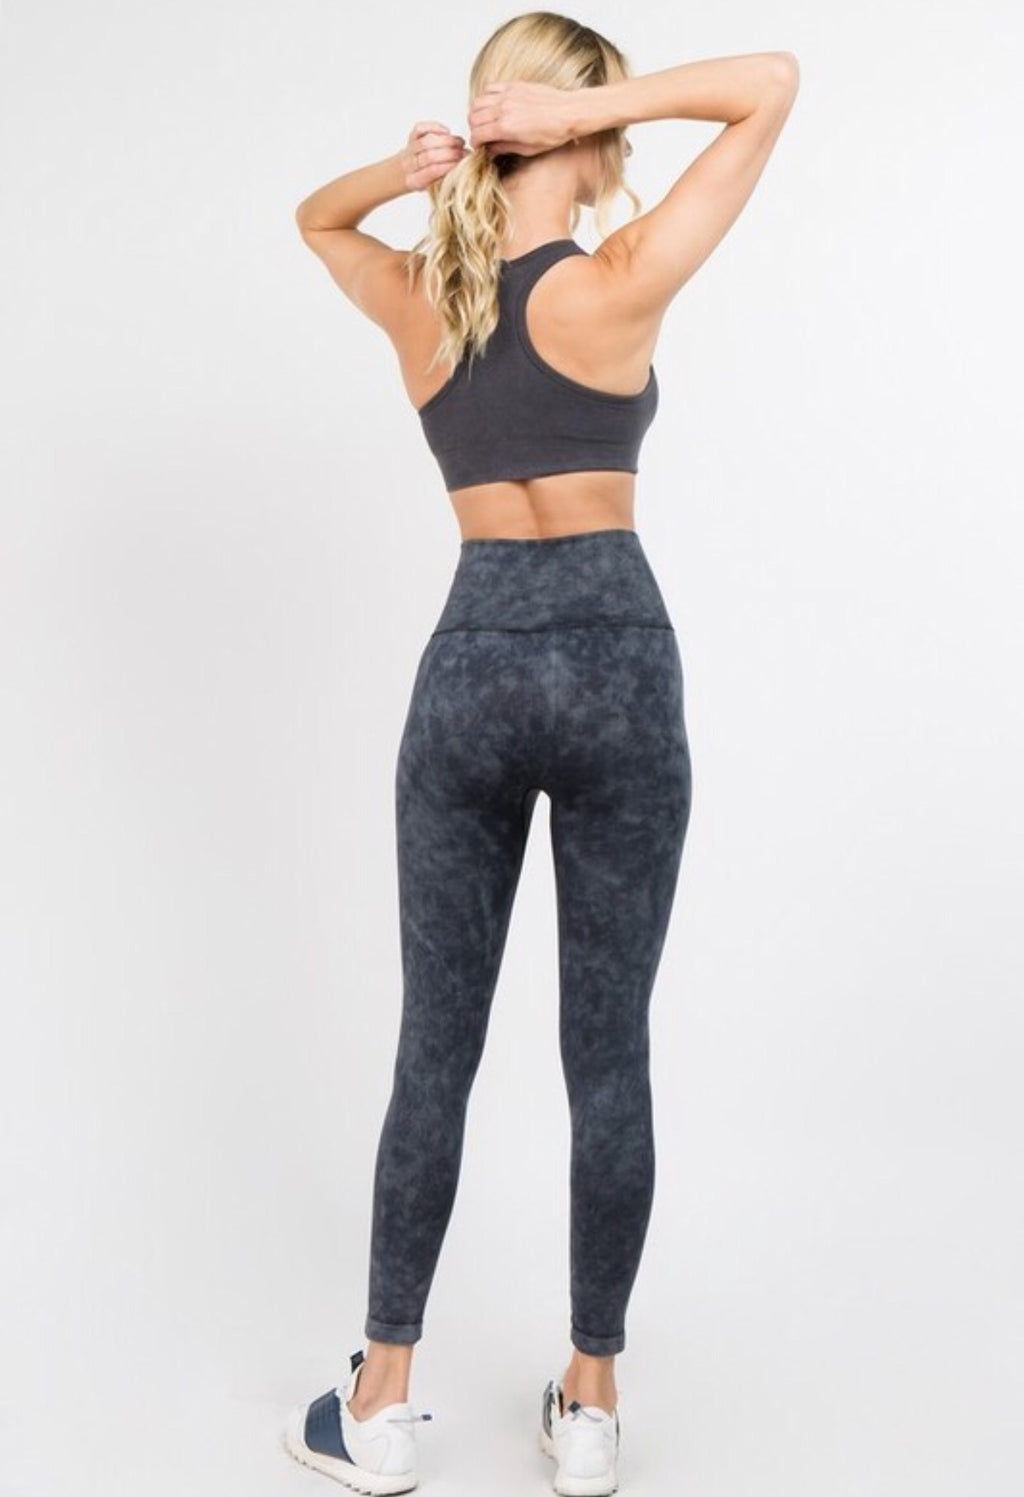 Mineral Wash Workout Leggings